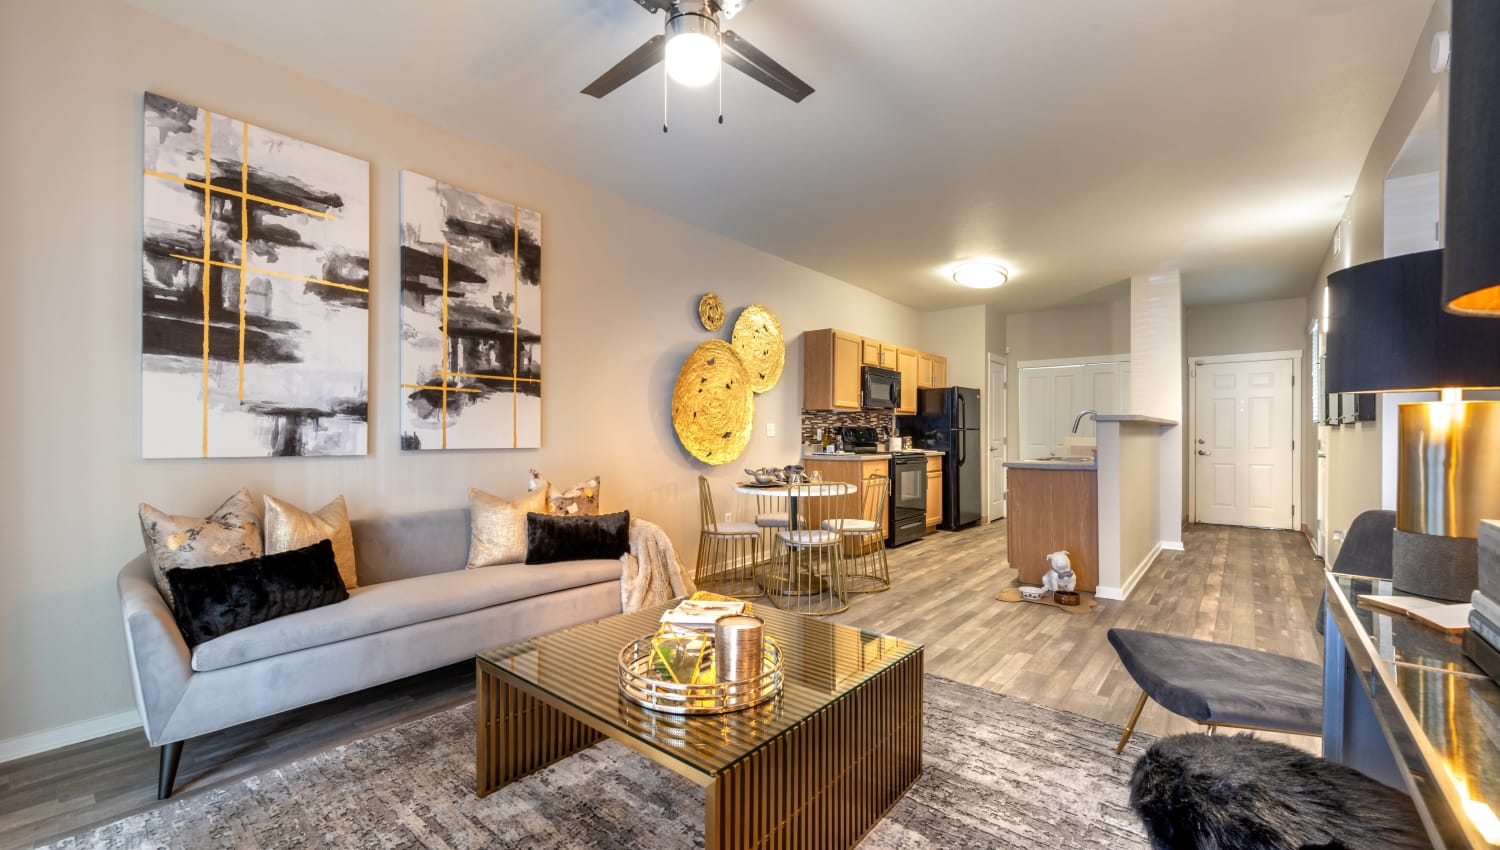 Model apartment with hardwood floors throughout the living area at Olympus Solaire in Albuquerque, New Mexico